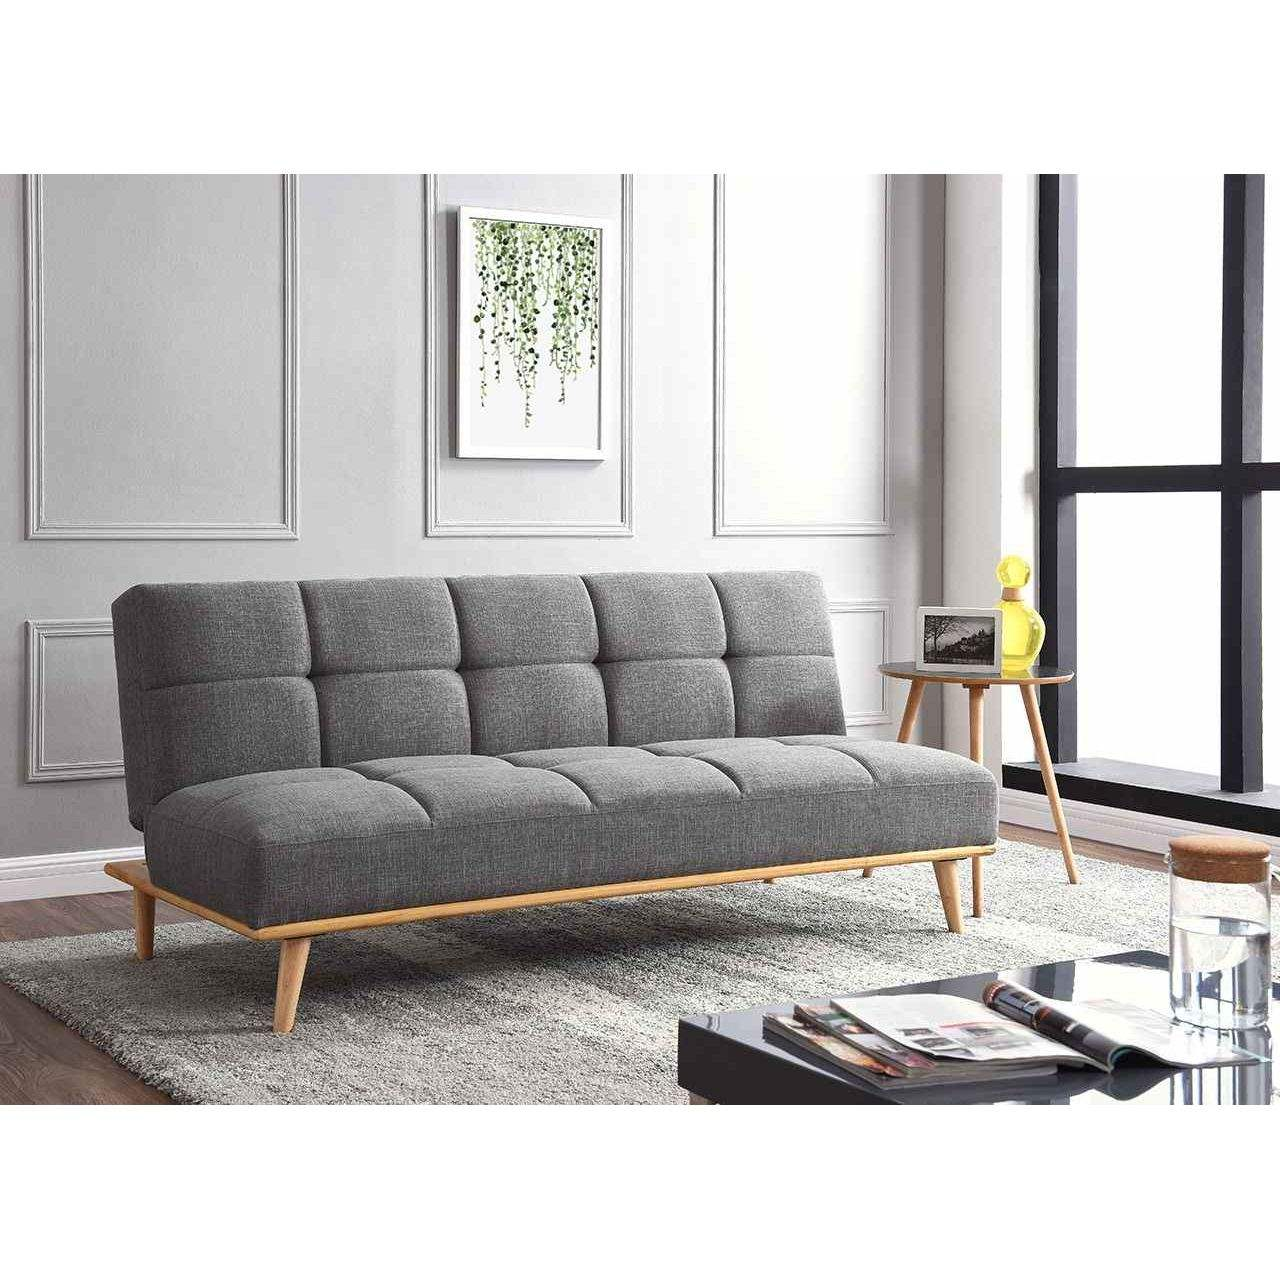 deco in paris 2 banquette clic clac scandinave 3 places gris jessy jessy clic clac gris. Black Bedroom Furniture Sets. Home Design Ideas